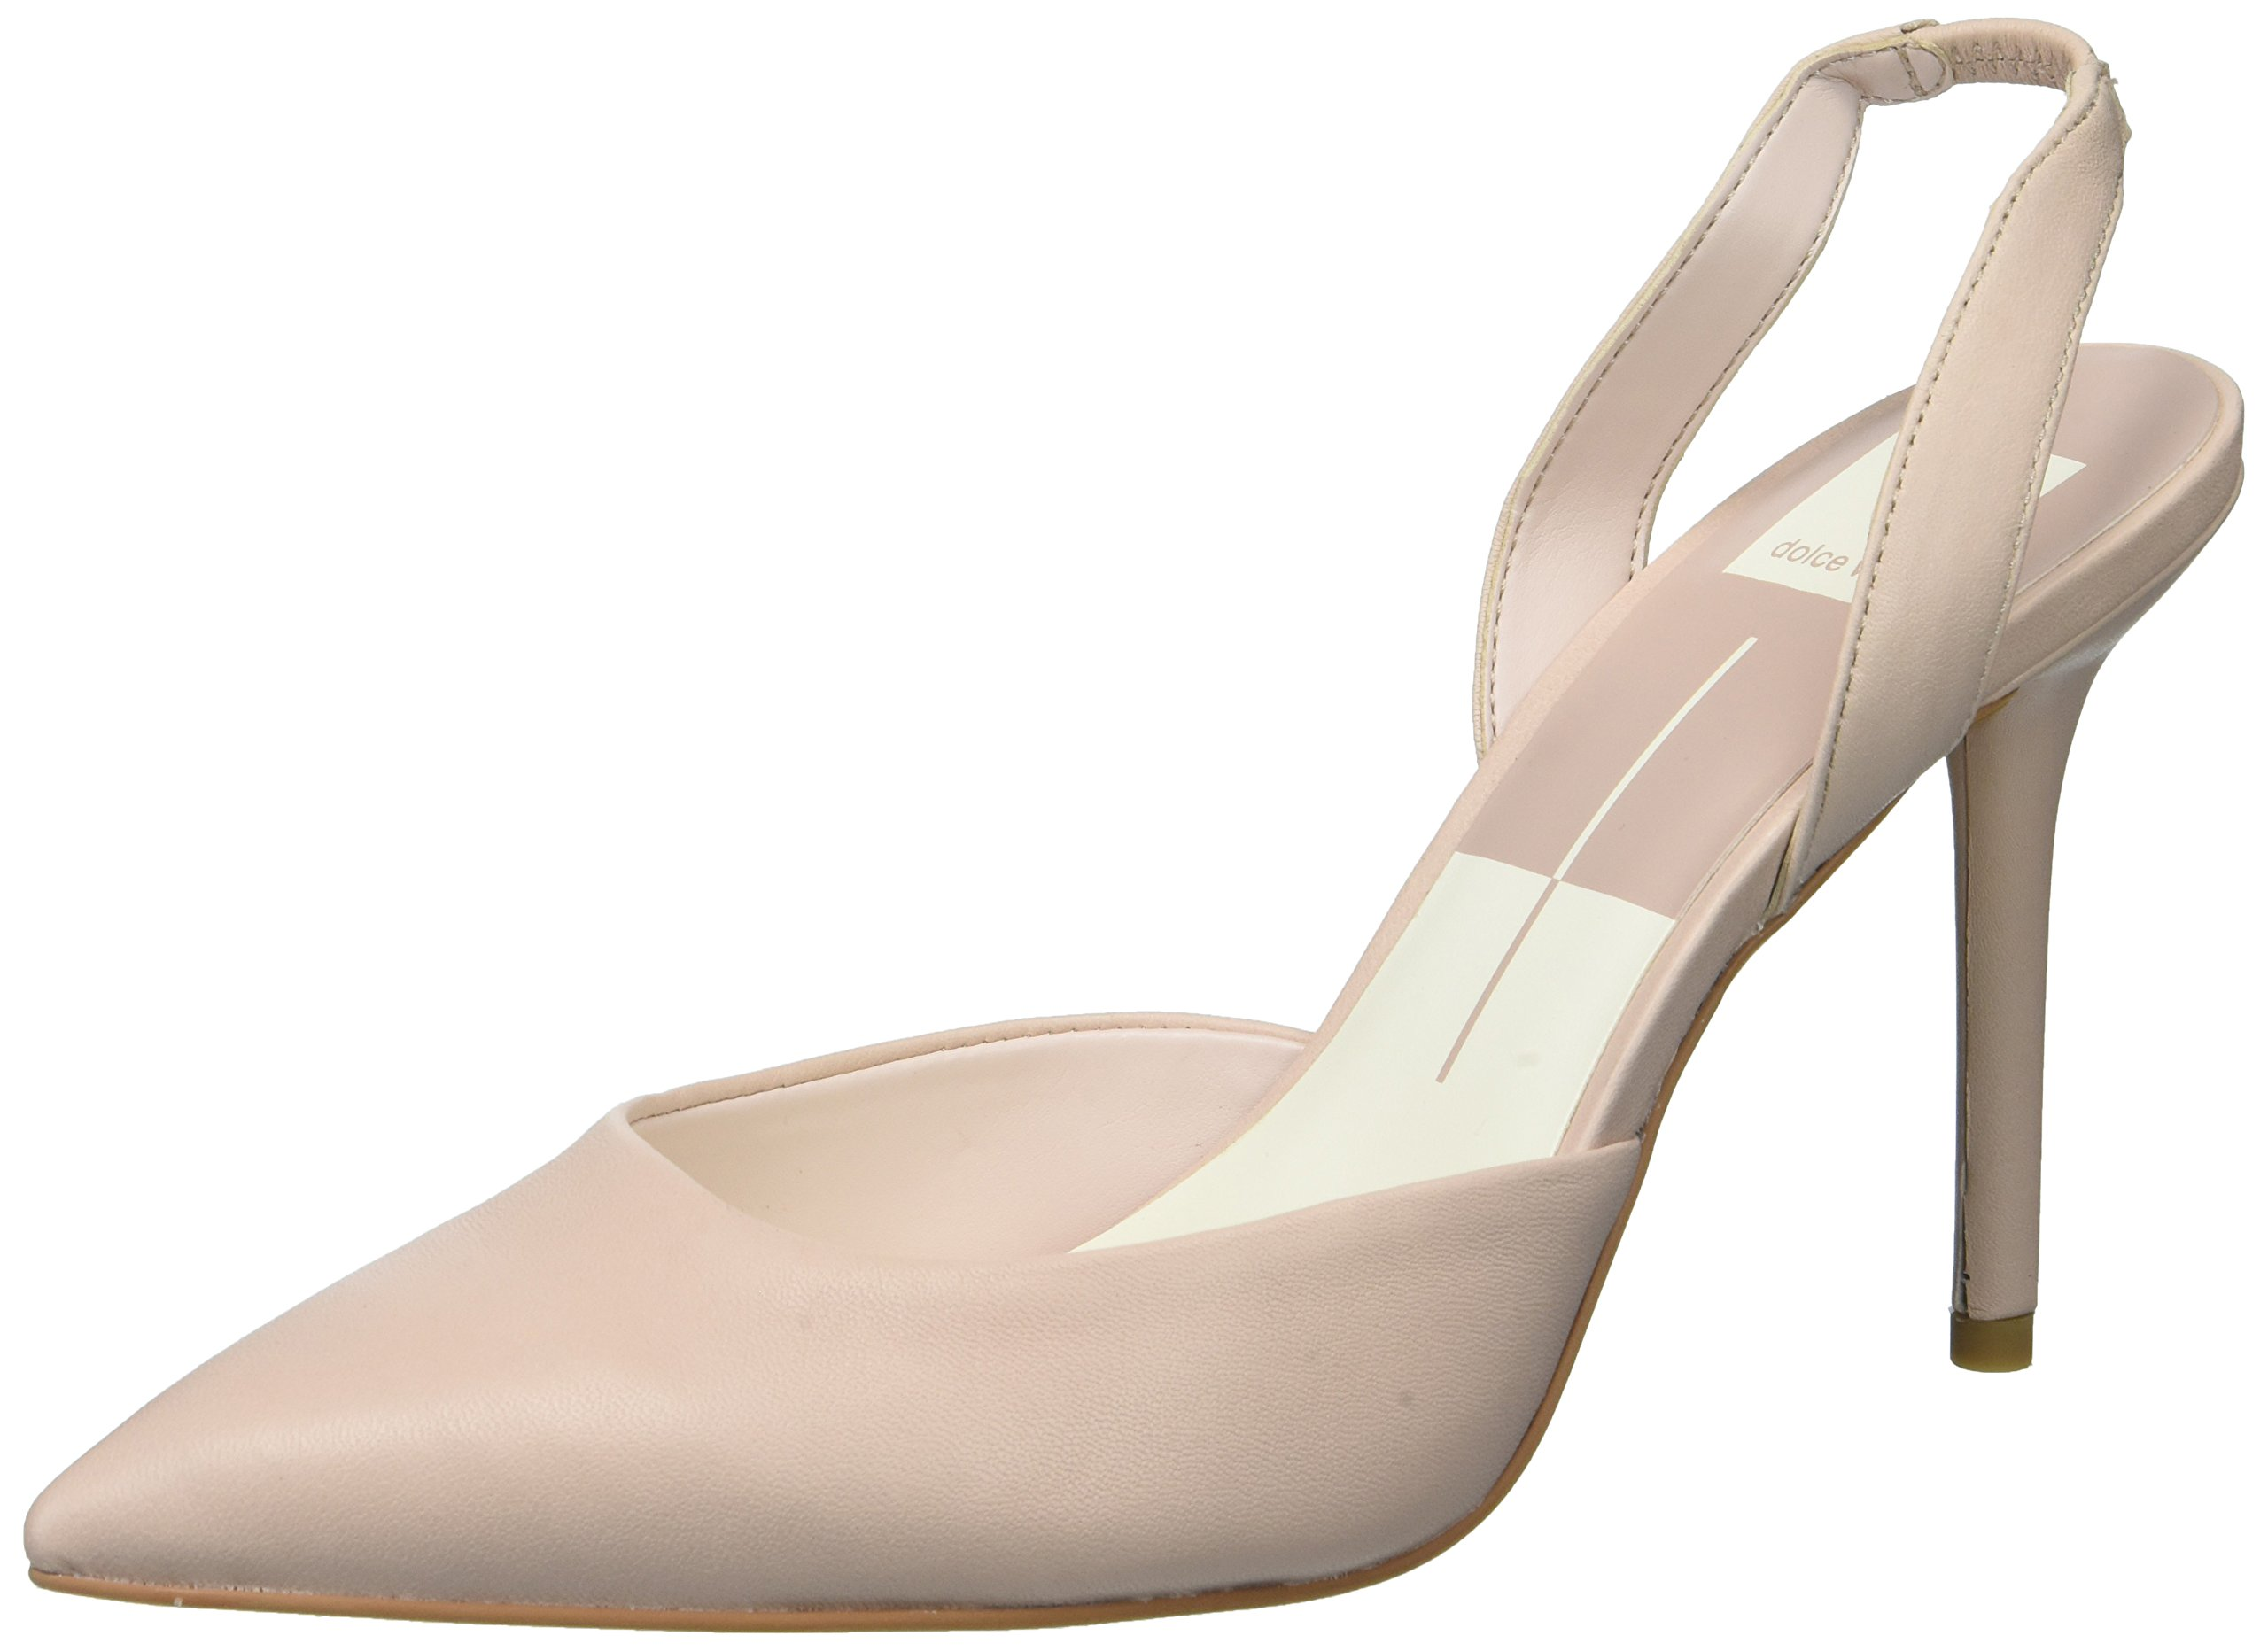 Dolce Vita Women's Maureen Pump, Light Blush Leather, 7.5 Medium US